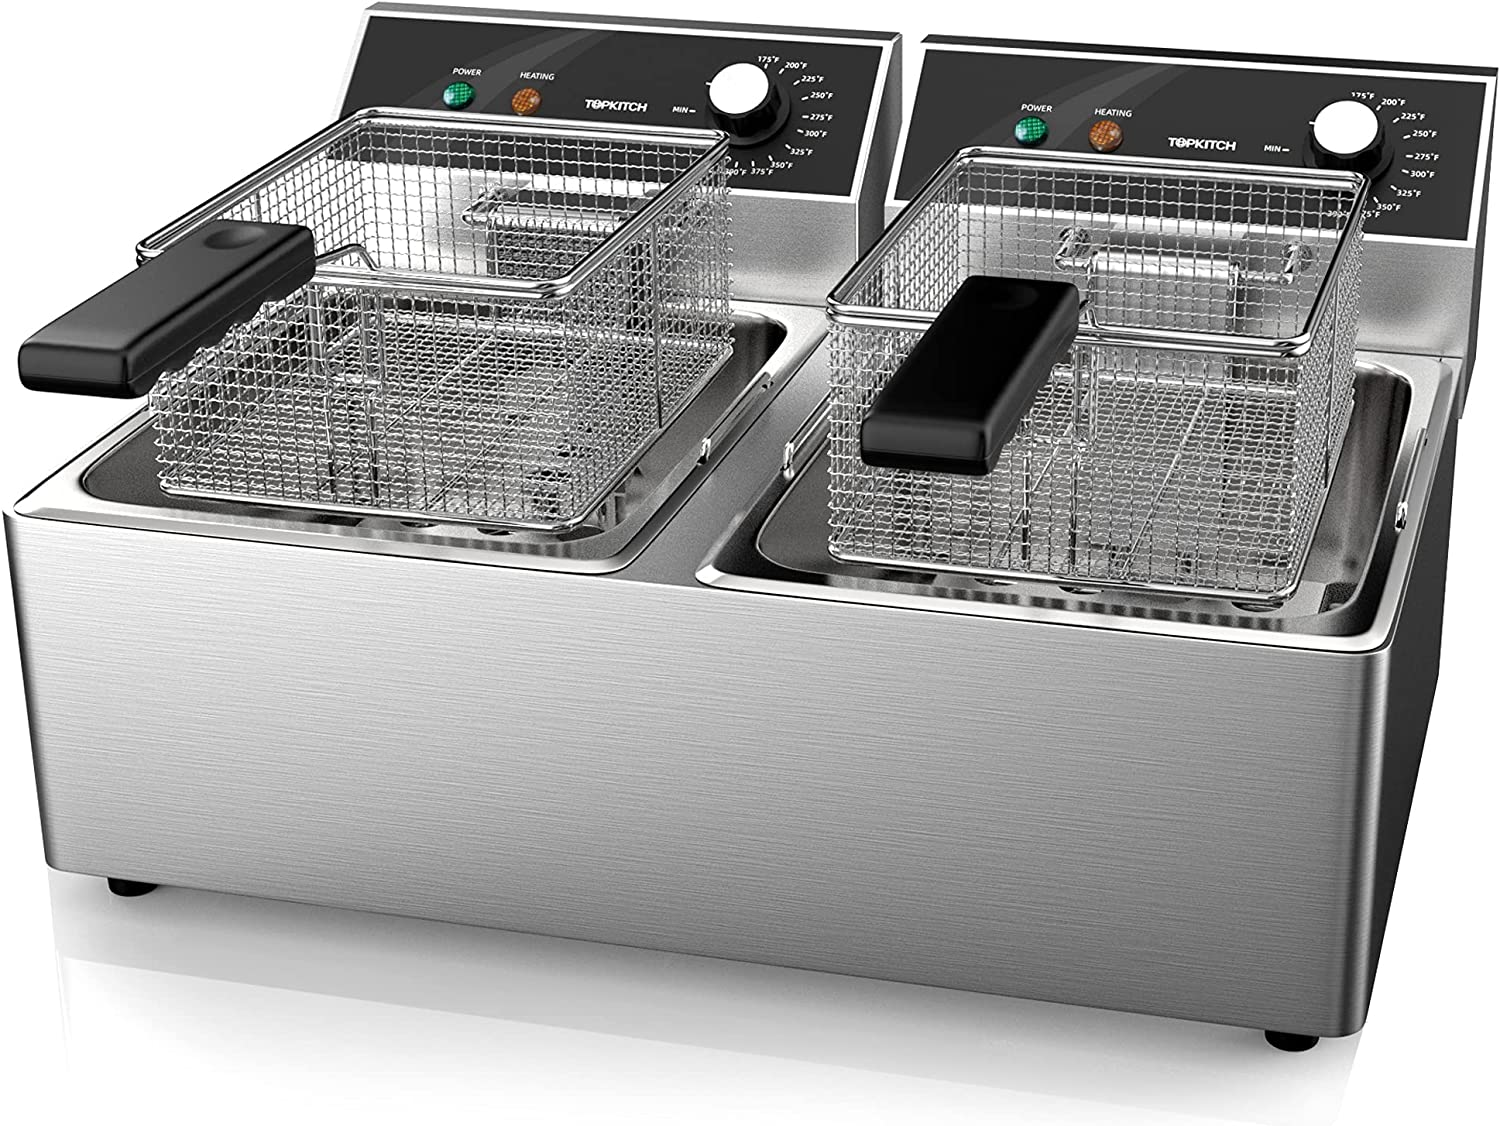 TOPKITCH Commercial Deep Fryer Stainless Steel Dual Tank Deep Fryer with 2 Baskets&Lids Temperature Limiter Capacity 2*10L Electric Countertop Fryer for Restaurant and Home Use